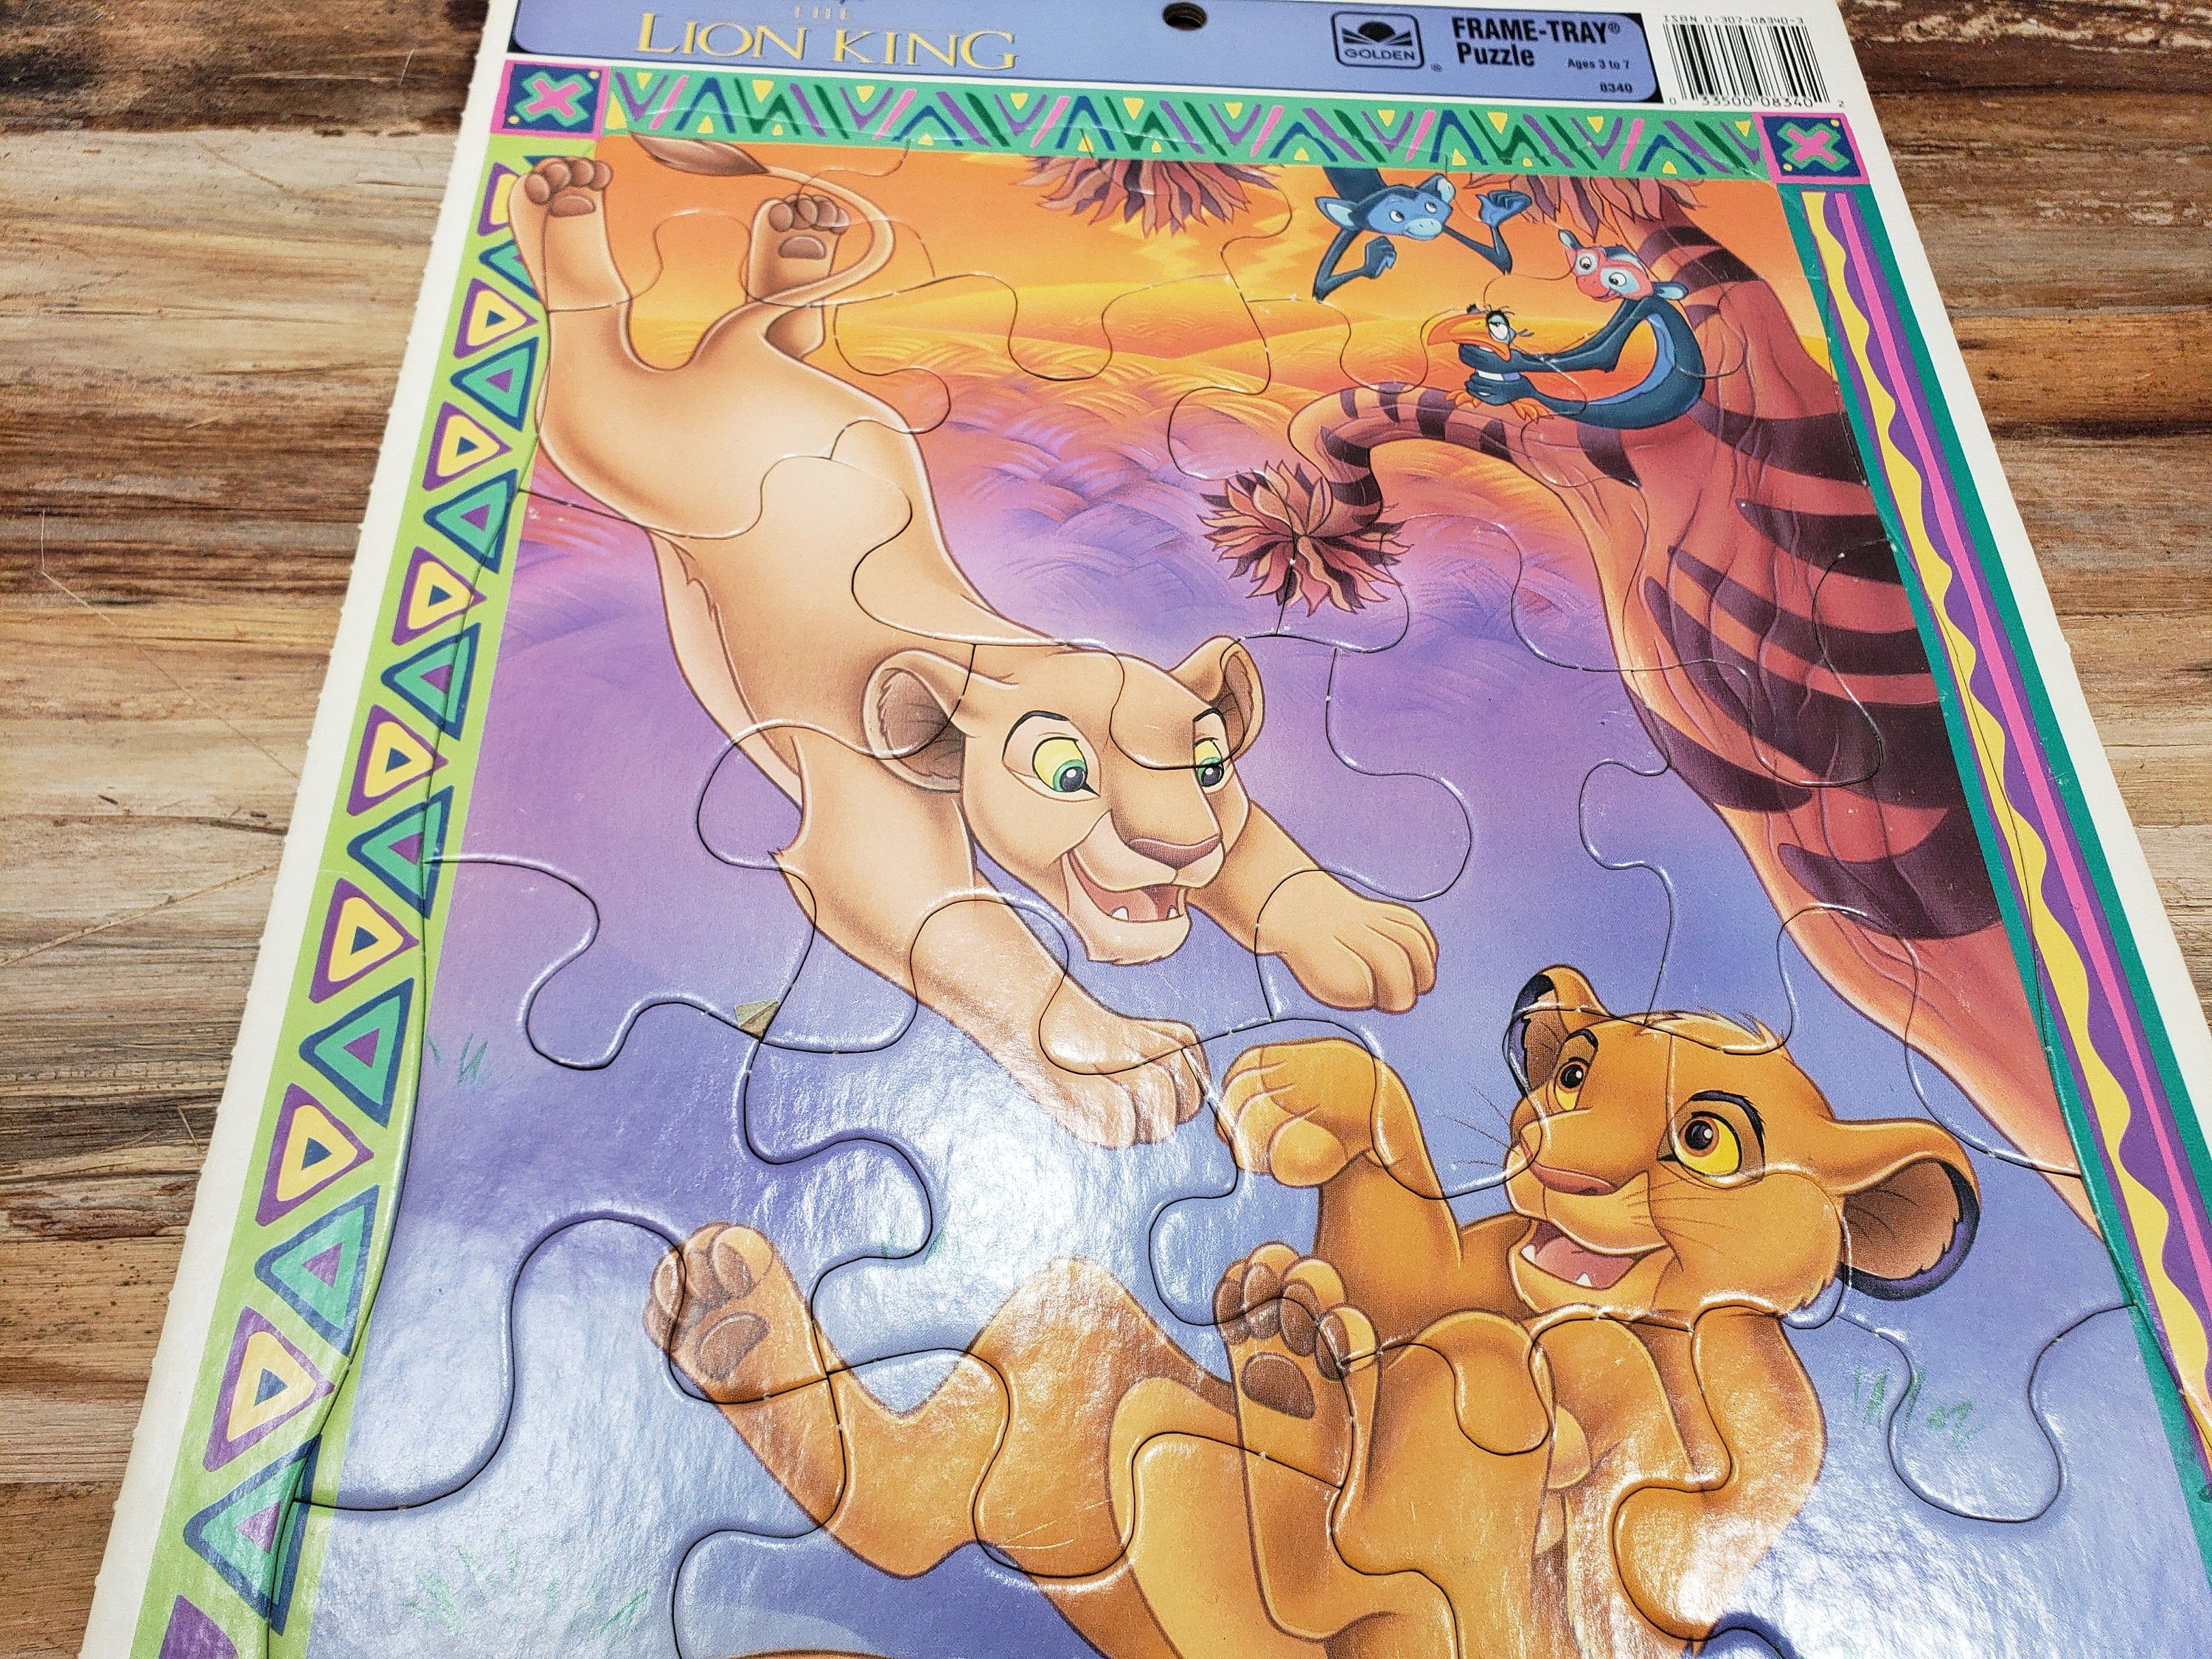 The Lion King Frame Tray Puzzle Vintage Puzzle In 2020 King Frame Frame Tray Lion King